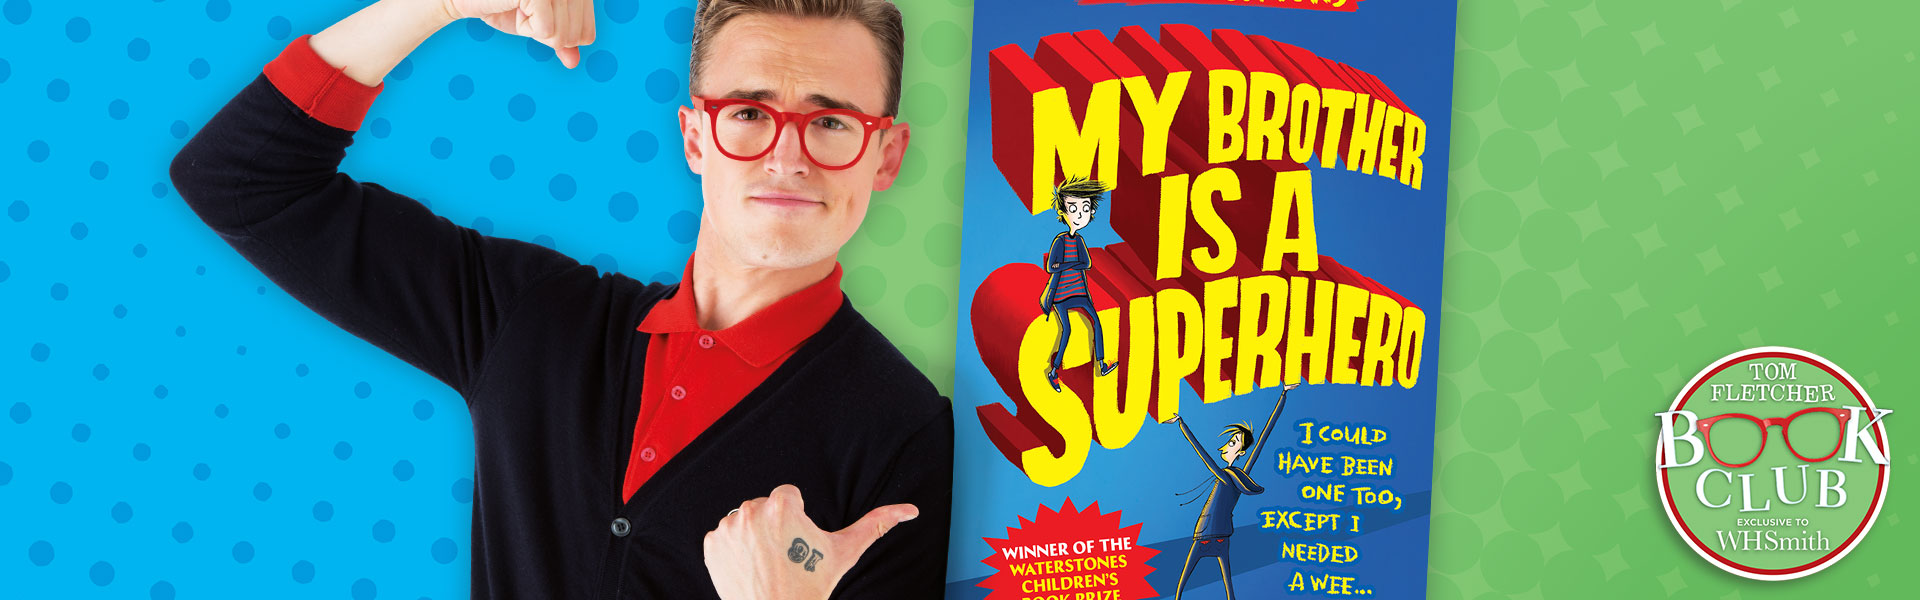 Tom Fletcher Book Club: My Brother is a Superhero by David Solomons